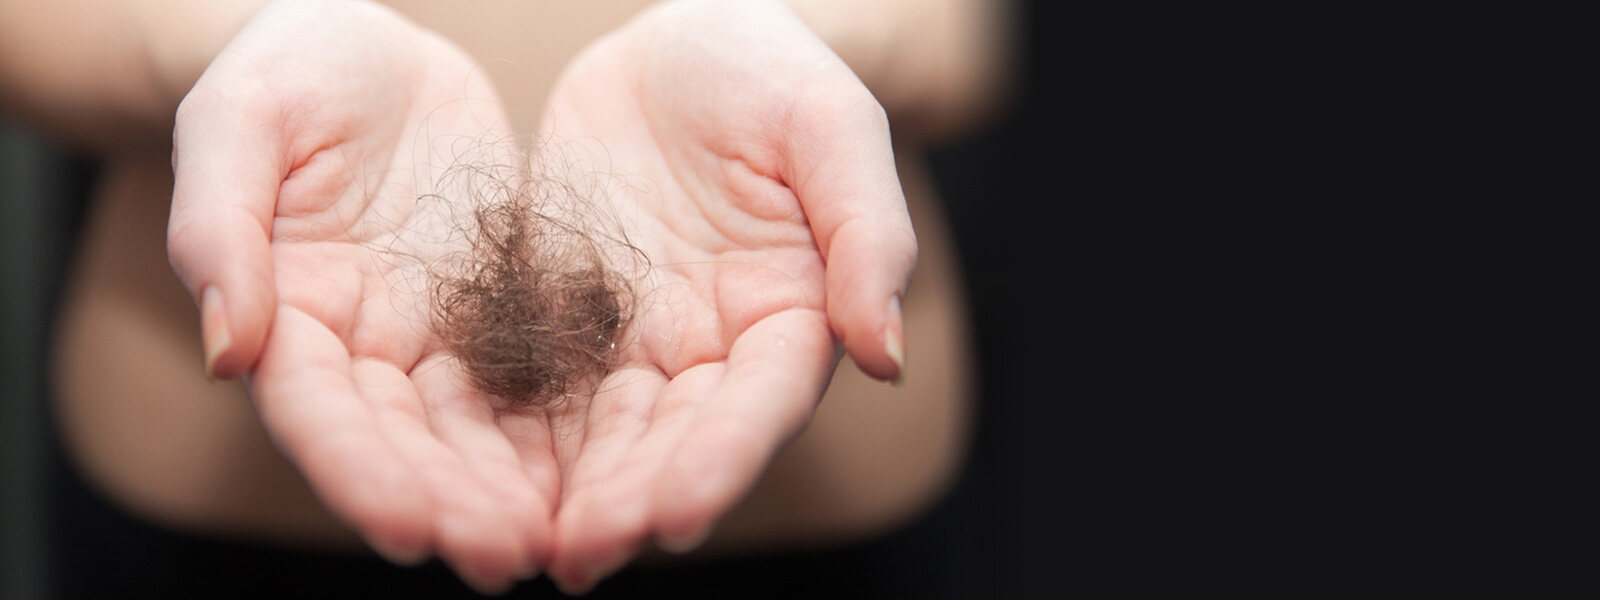 womans hands holding a chunk of lost hair